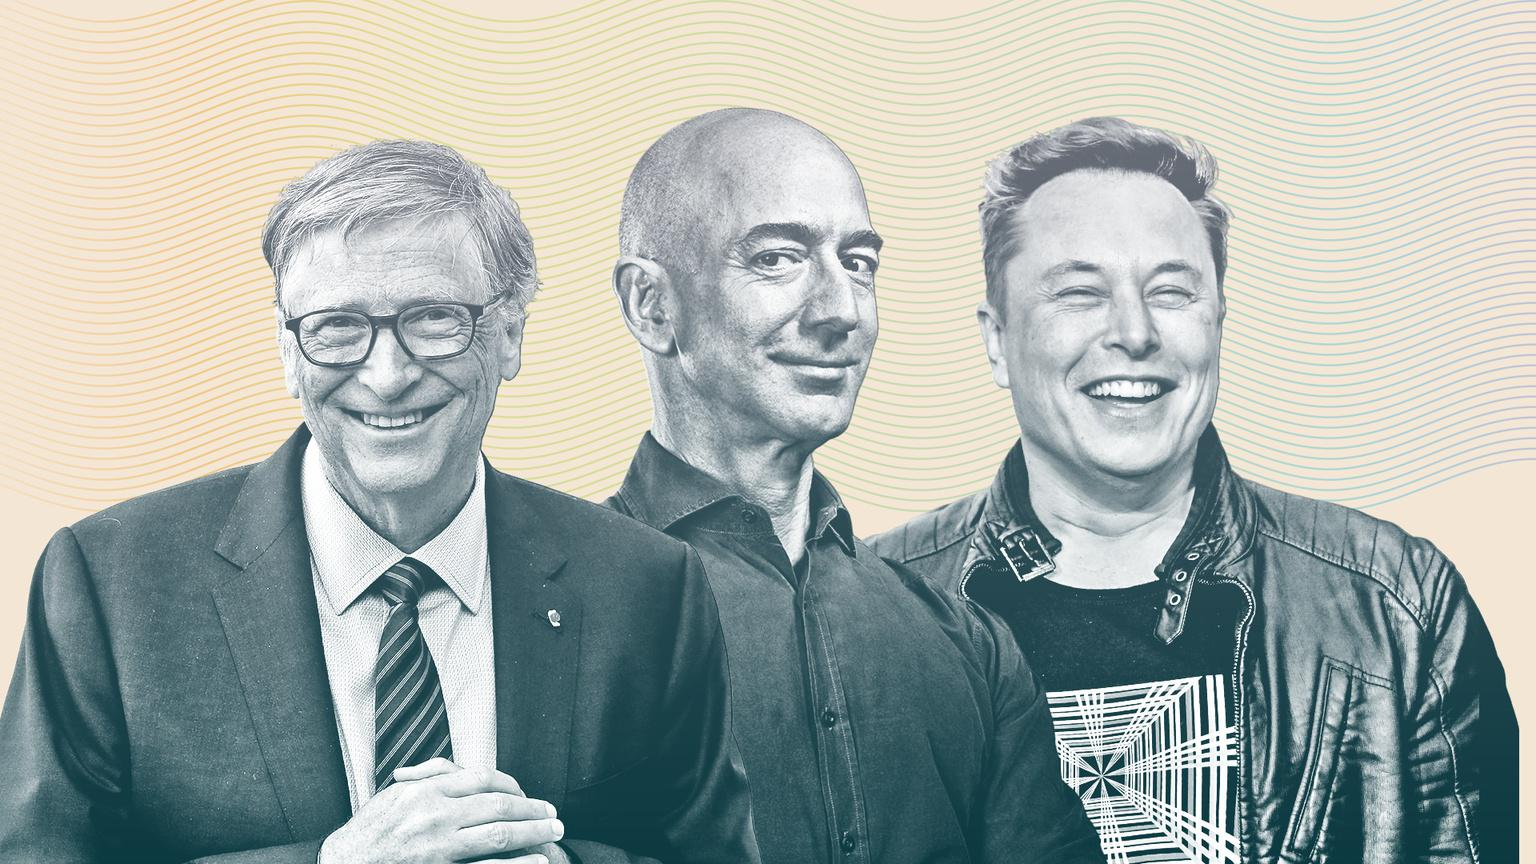 Bill Gates, Jeff Bezos, and Elon Musk are some of the world's richest people.